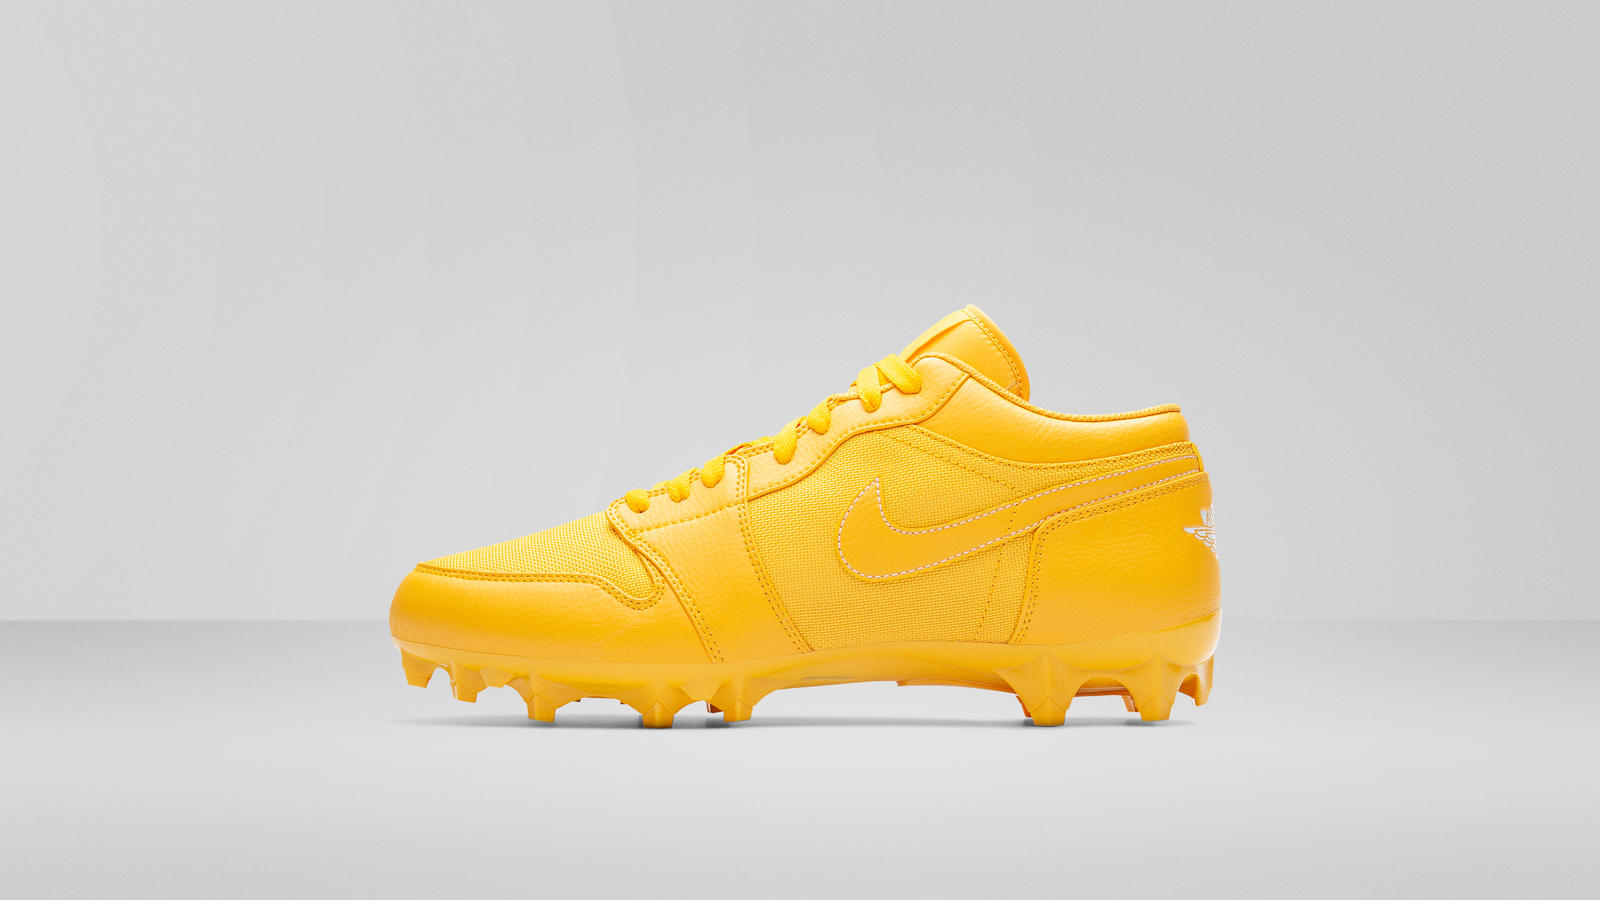 Jordan Brand Cleats NFL Opening Week 2019 4